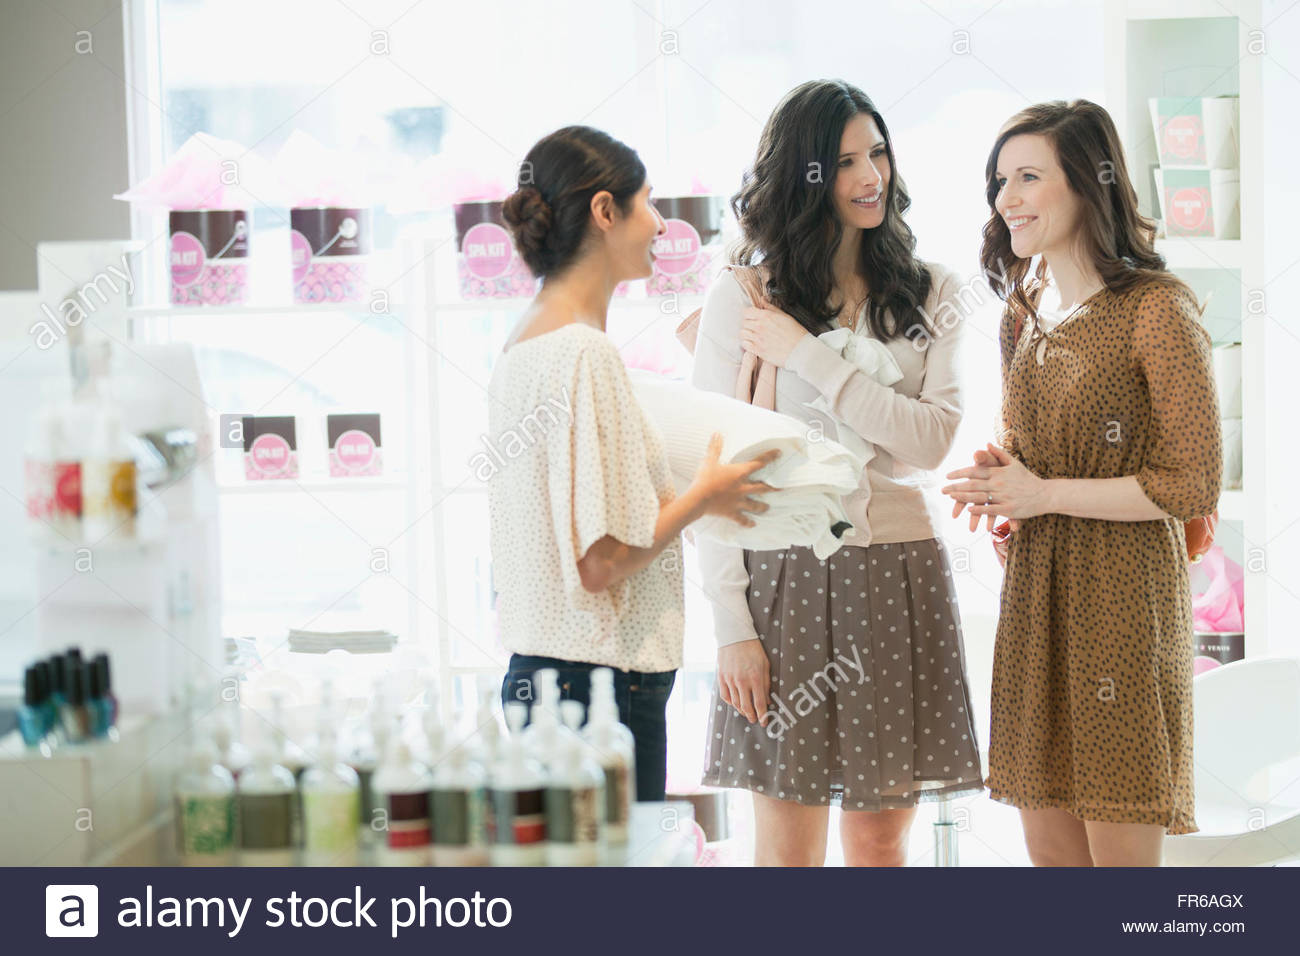 women choosing beauty products at spa - Stock Image